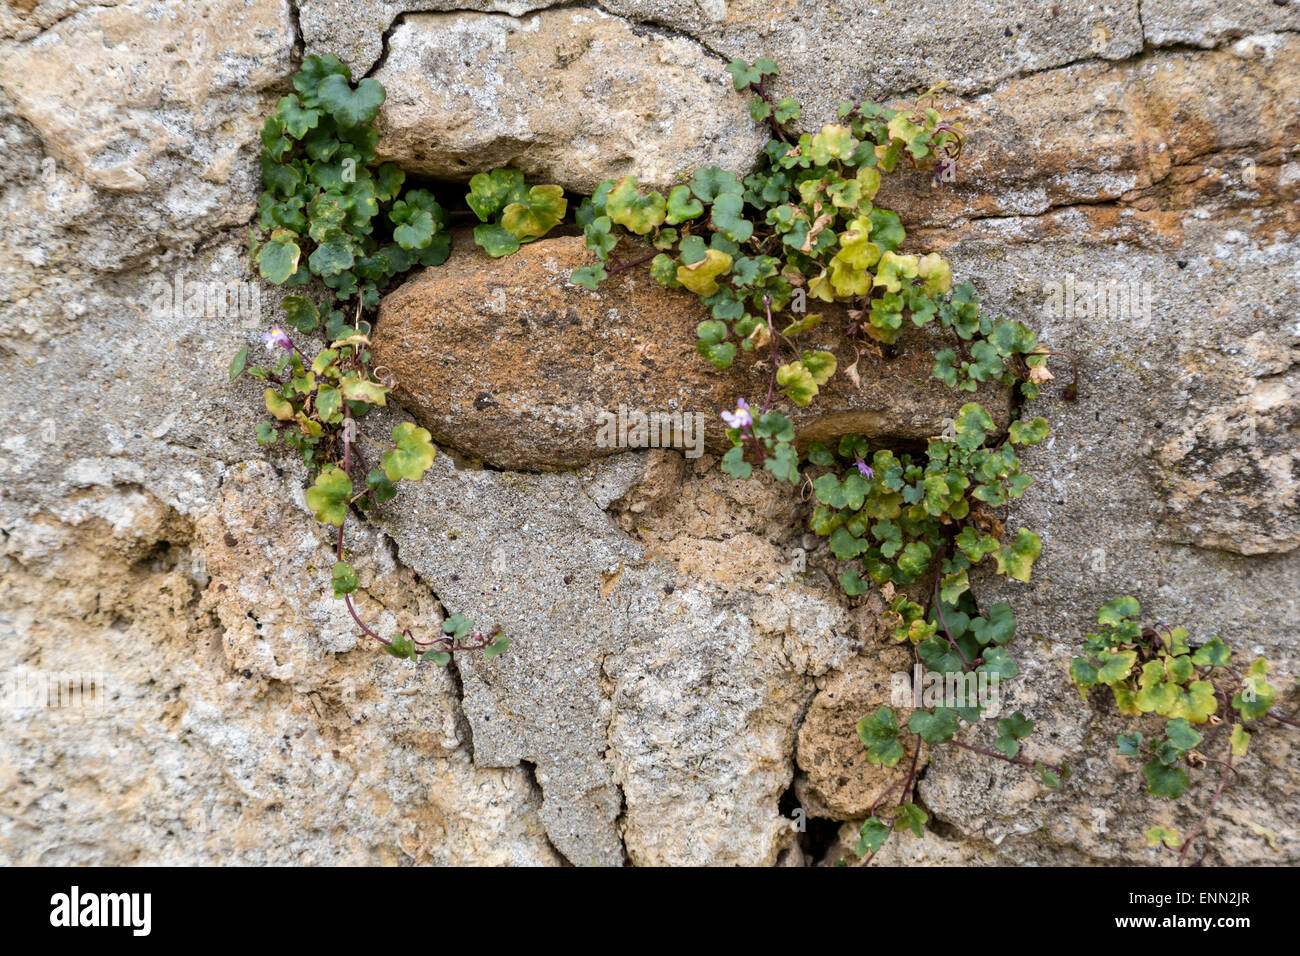 UK, England, Oxford.  Historic Preservation.  Weeds grow in cracks in town walls, loosening mortar and undermining - Stock Image